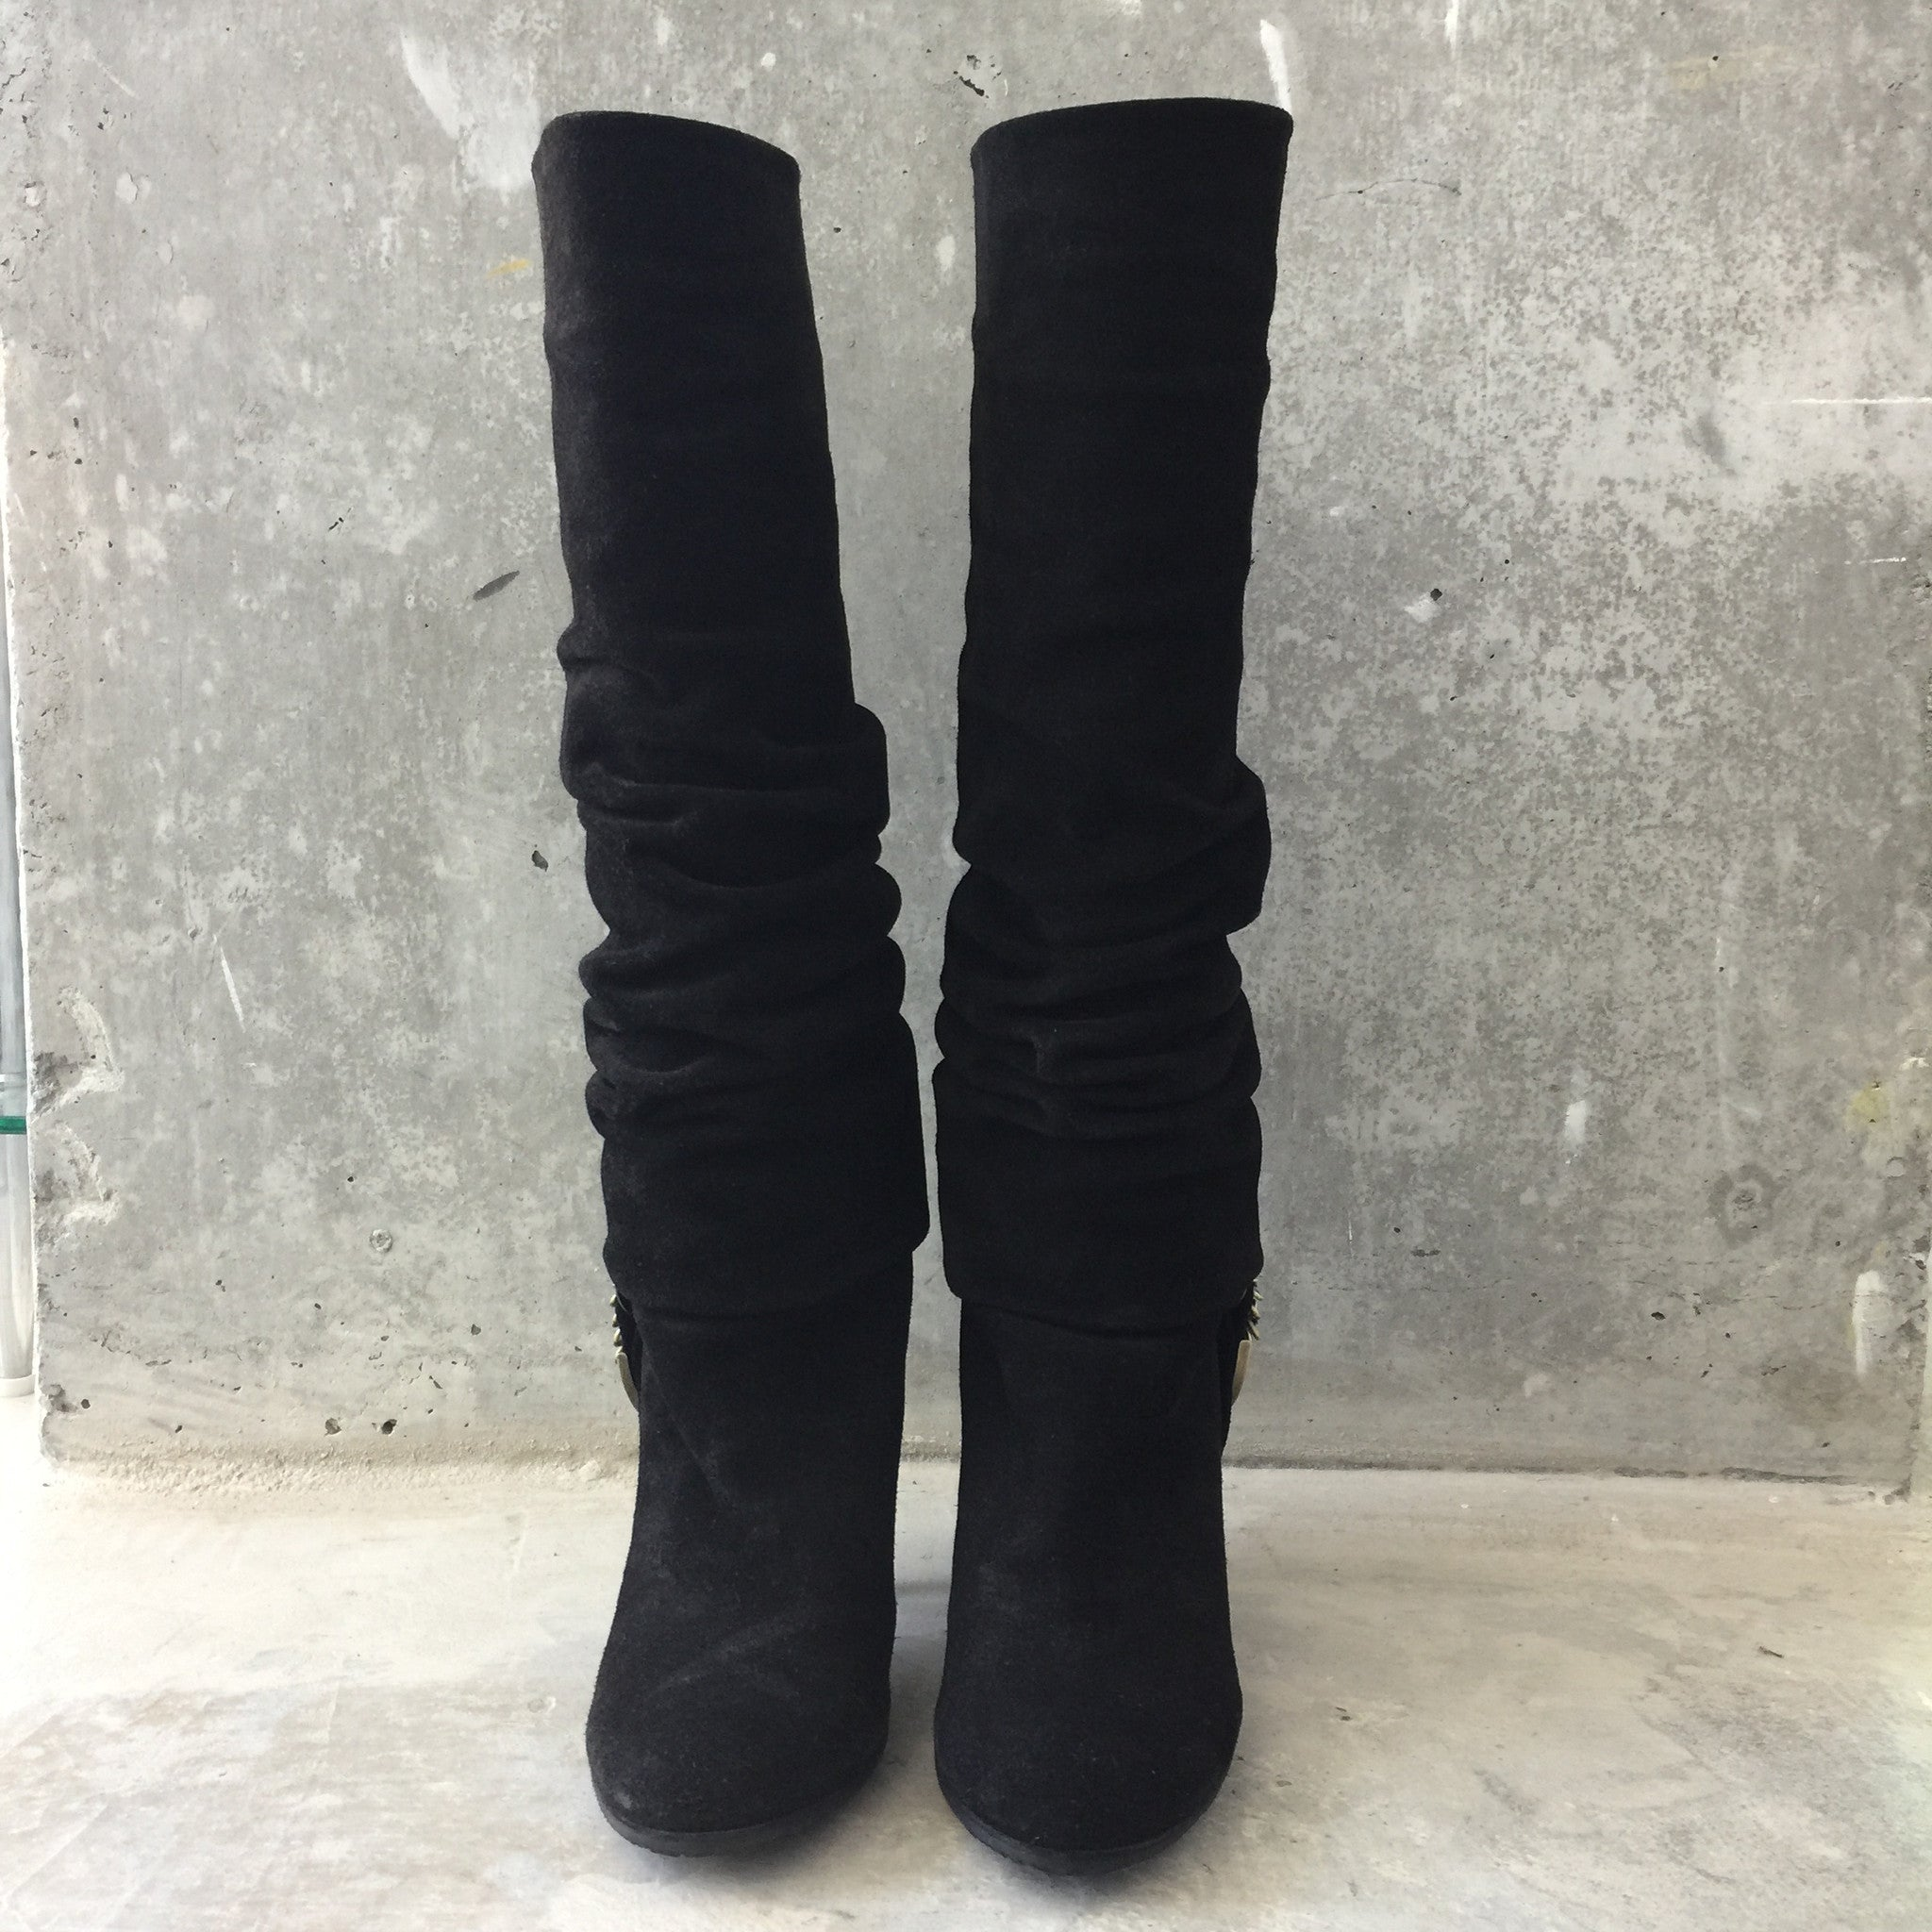 Authentic CHRISTIAN DIOR Suede Boots Size 36